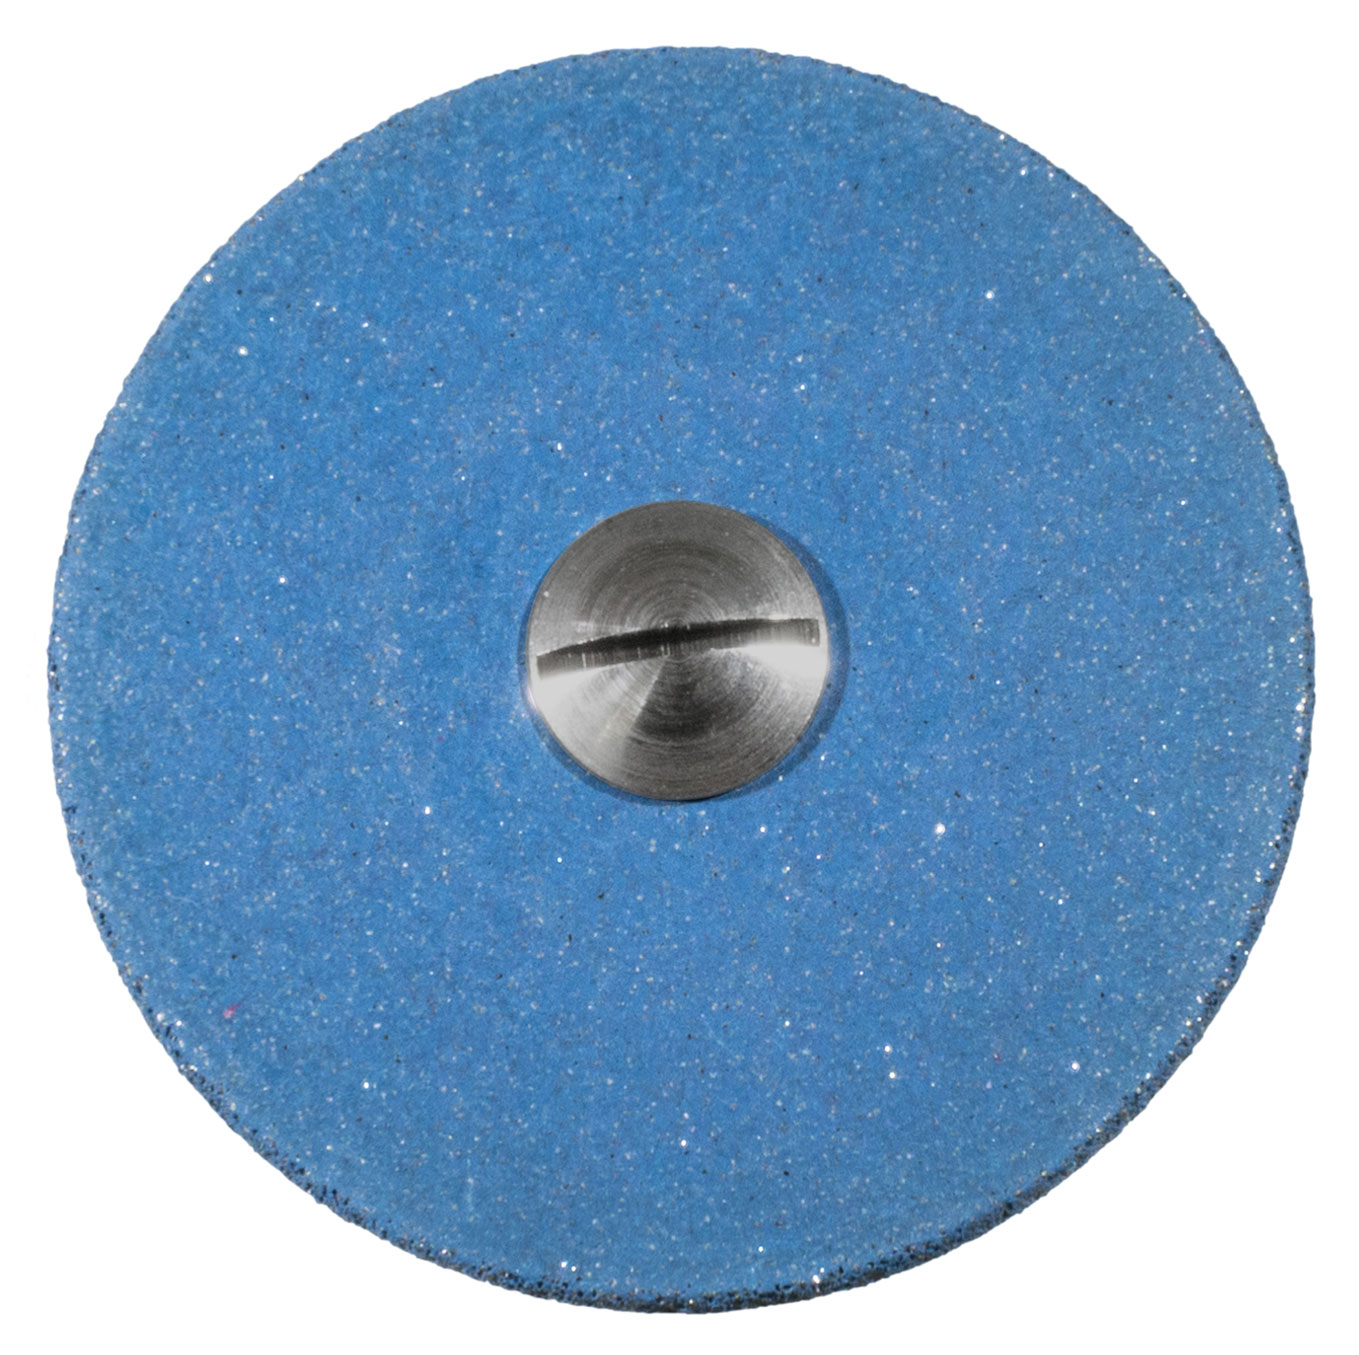 PEARLADIA MEDIUM 25MM DIAMETER (S25M)